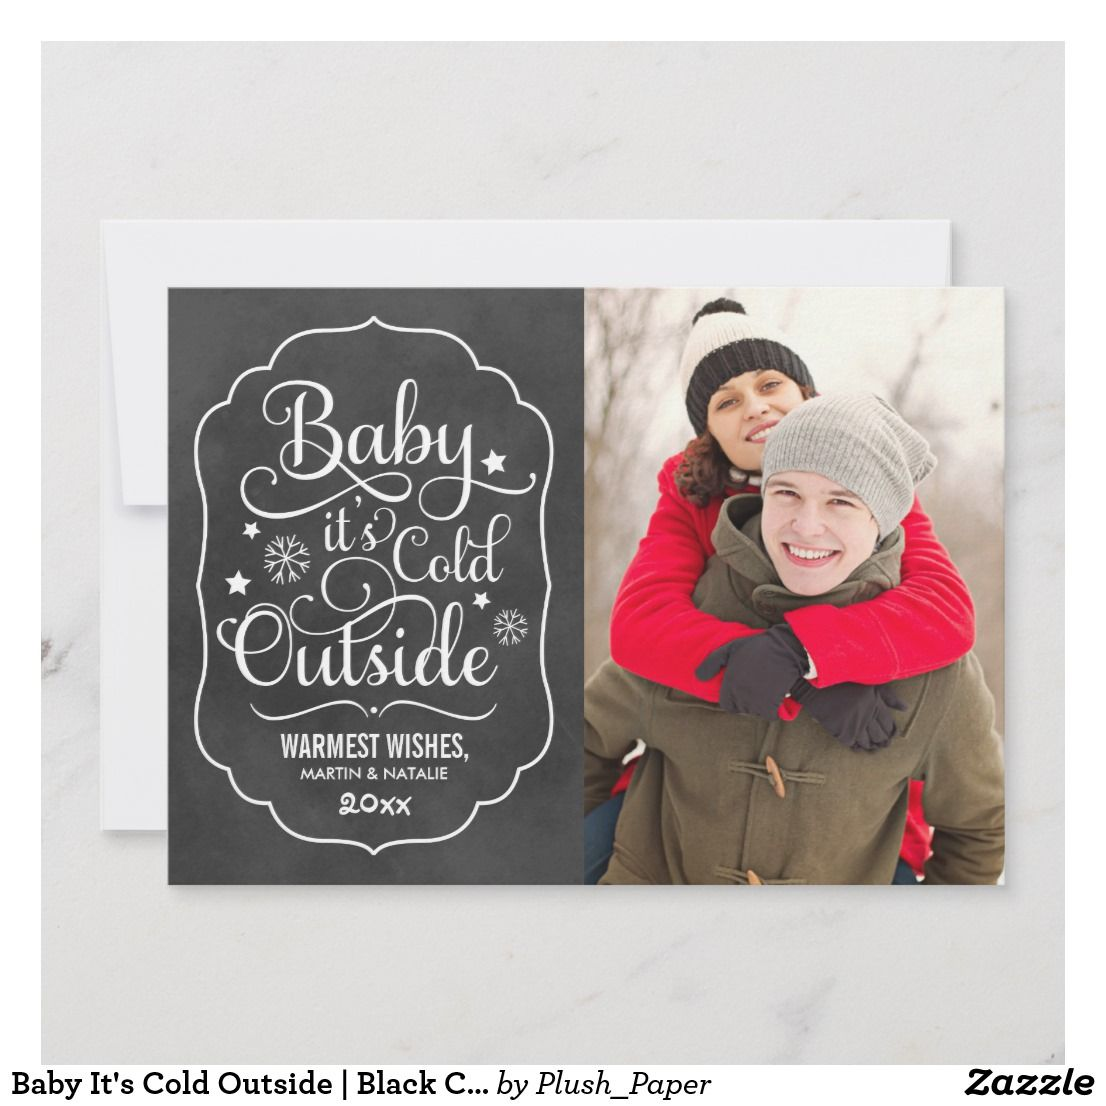 Baby its cold outside black chalkboard photo holiday card